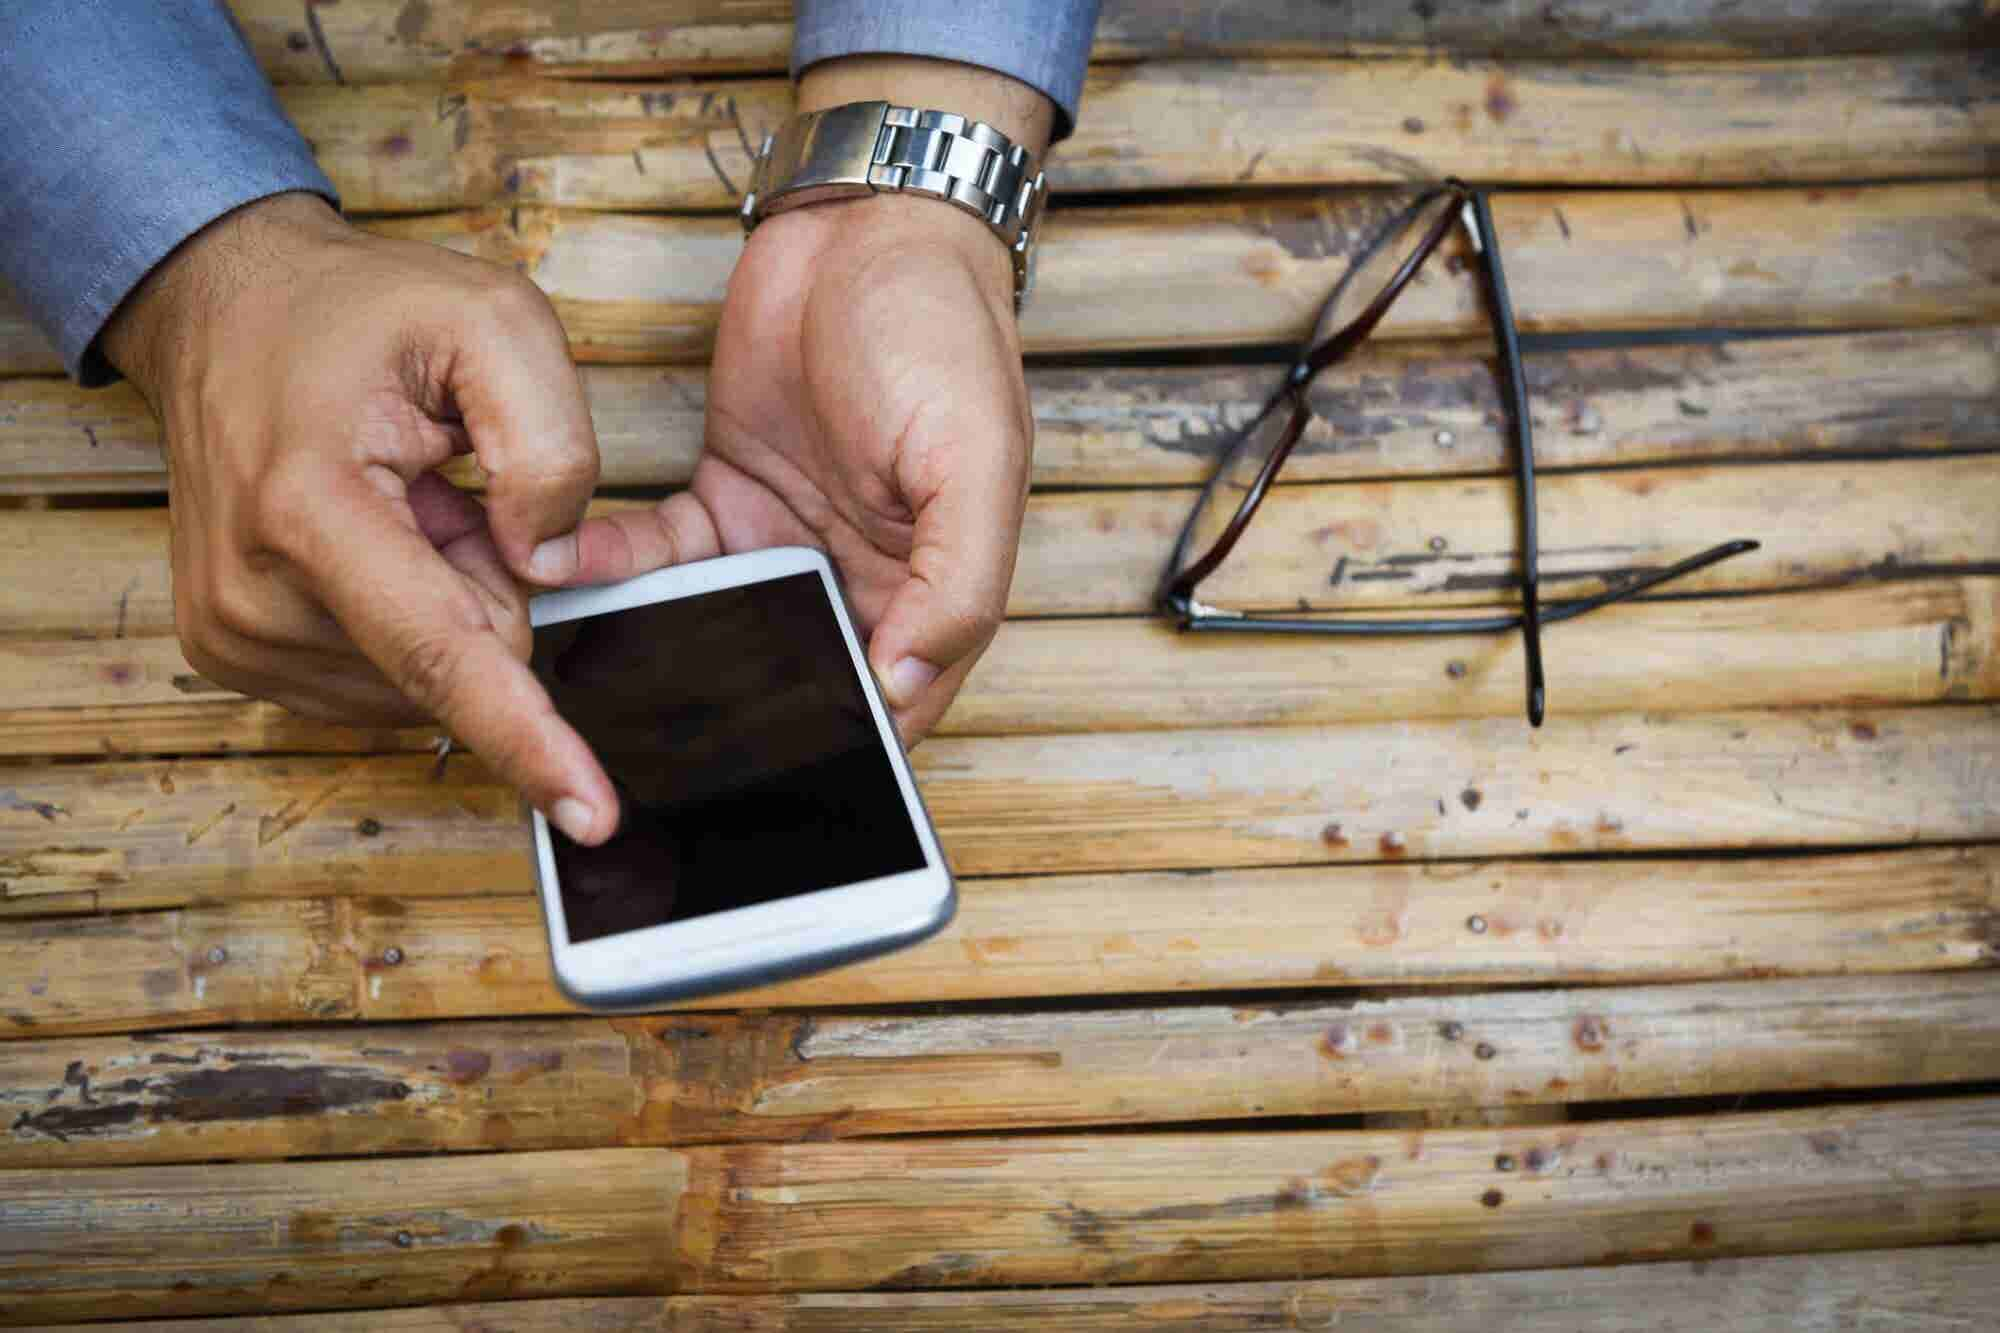 To Create More Authority for Your Brand, Get Your Own Mobile App